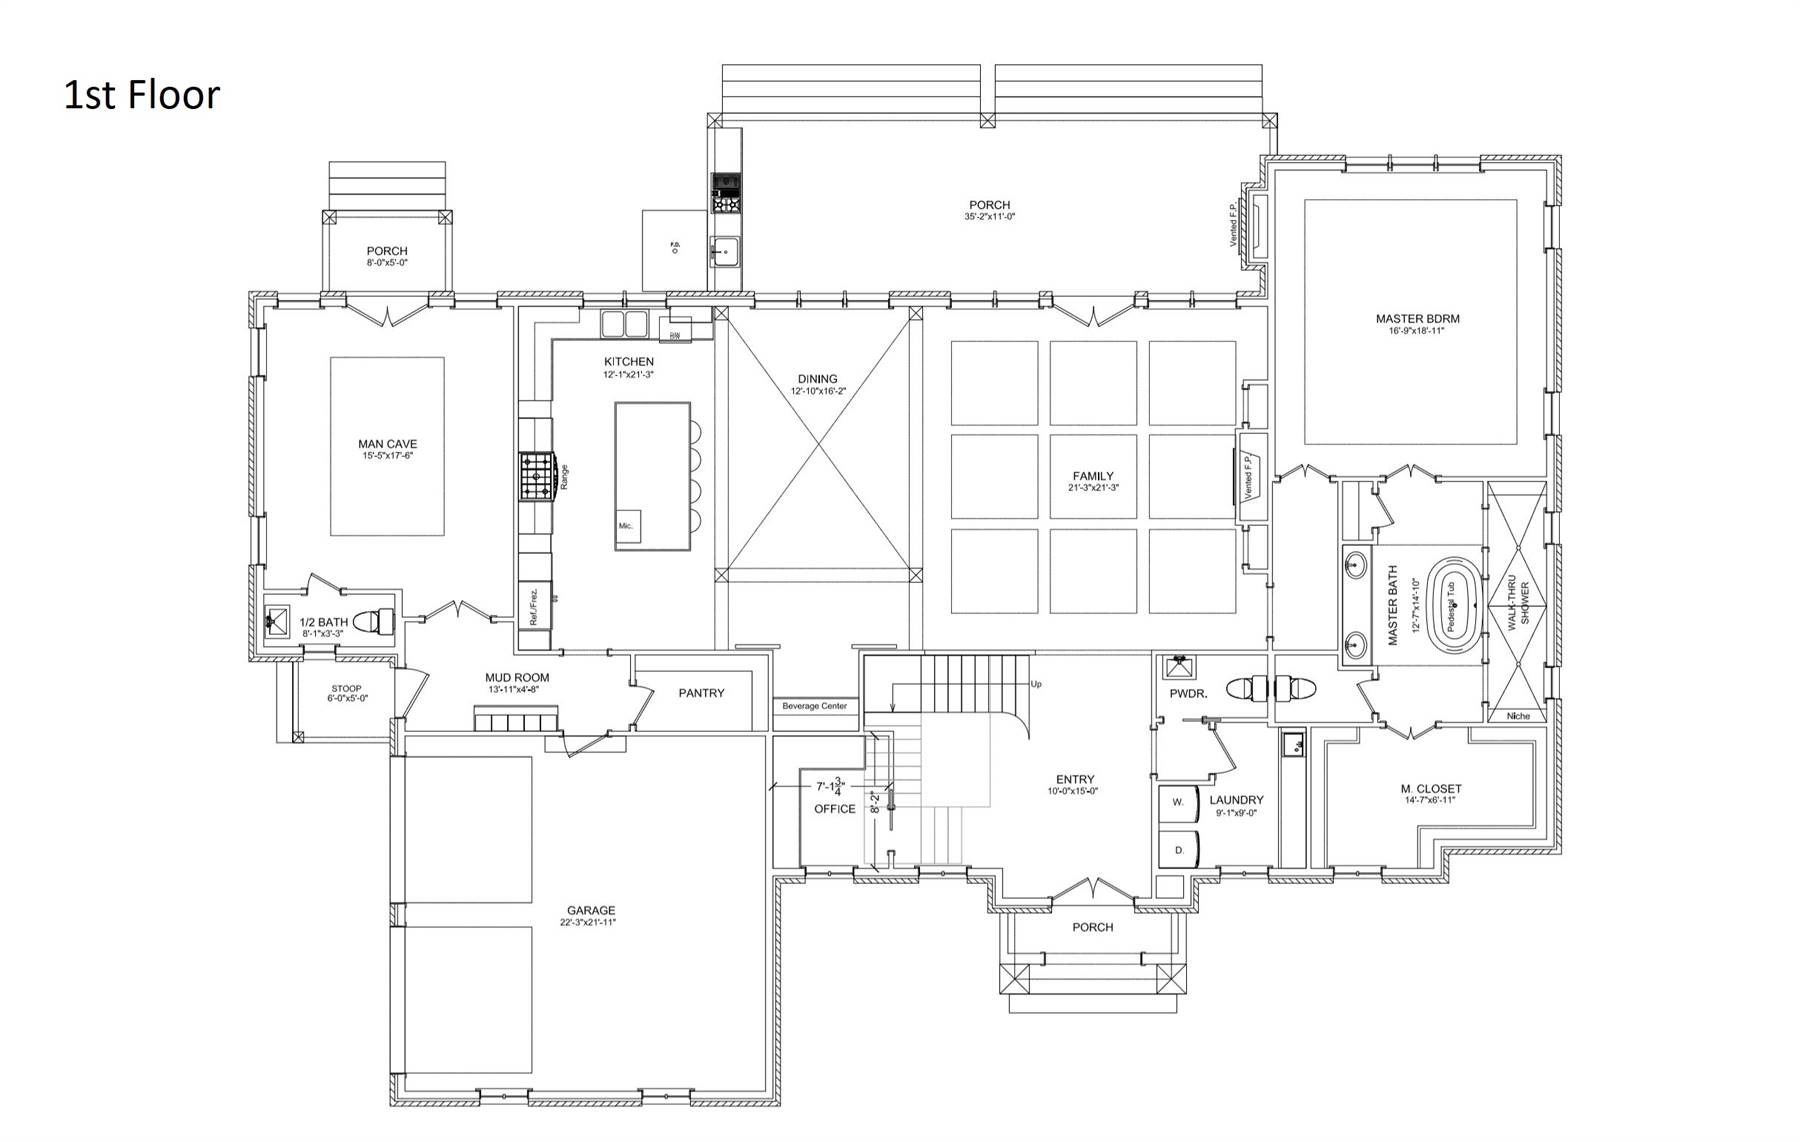 European House Plan with 4 Bedrooms and 35 Baths  Plan 6900